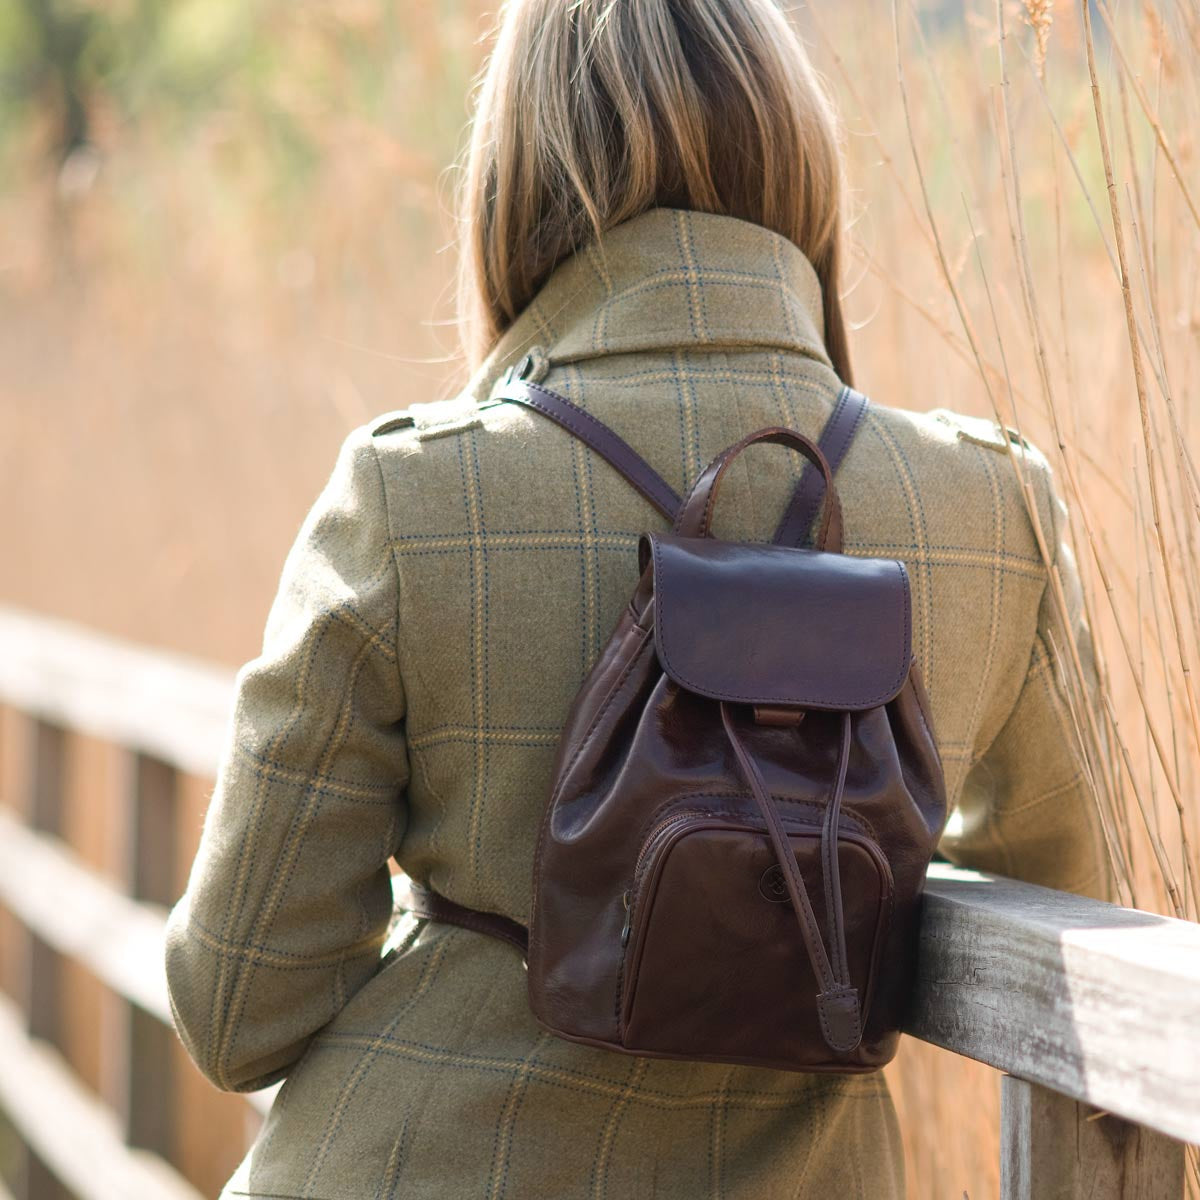 Image 6 of the 'Popolo' Compact Dark Chocolate Veg-Tanned Leather Shoulder Bag